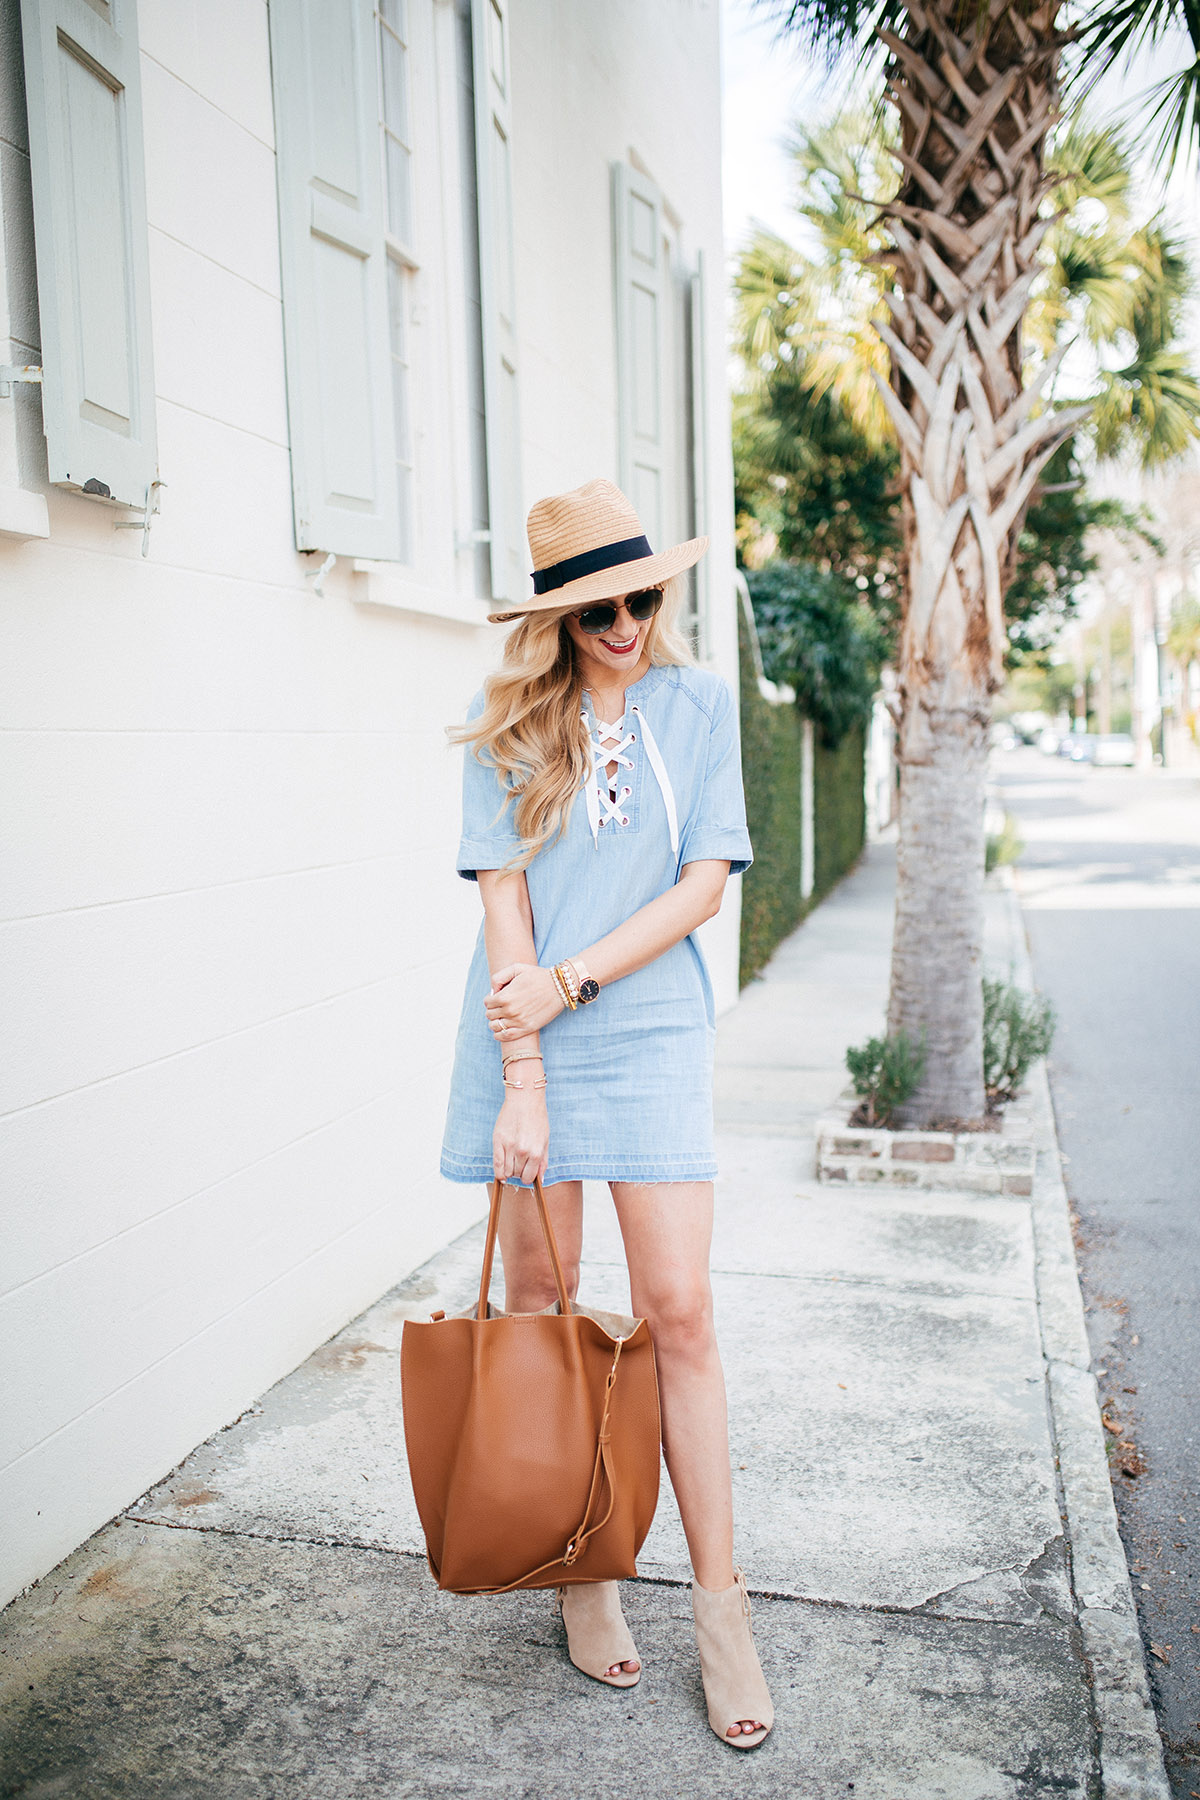 The three must-have spring accessories you'll wear all season long: wedge booties | cognac leather tote | wide brim hat